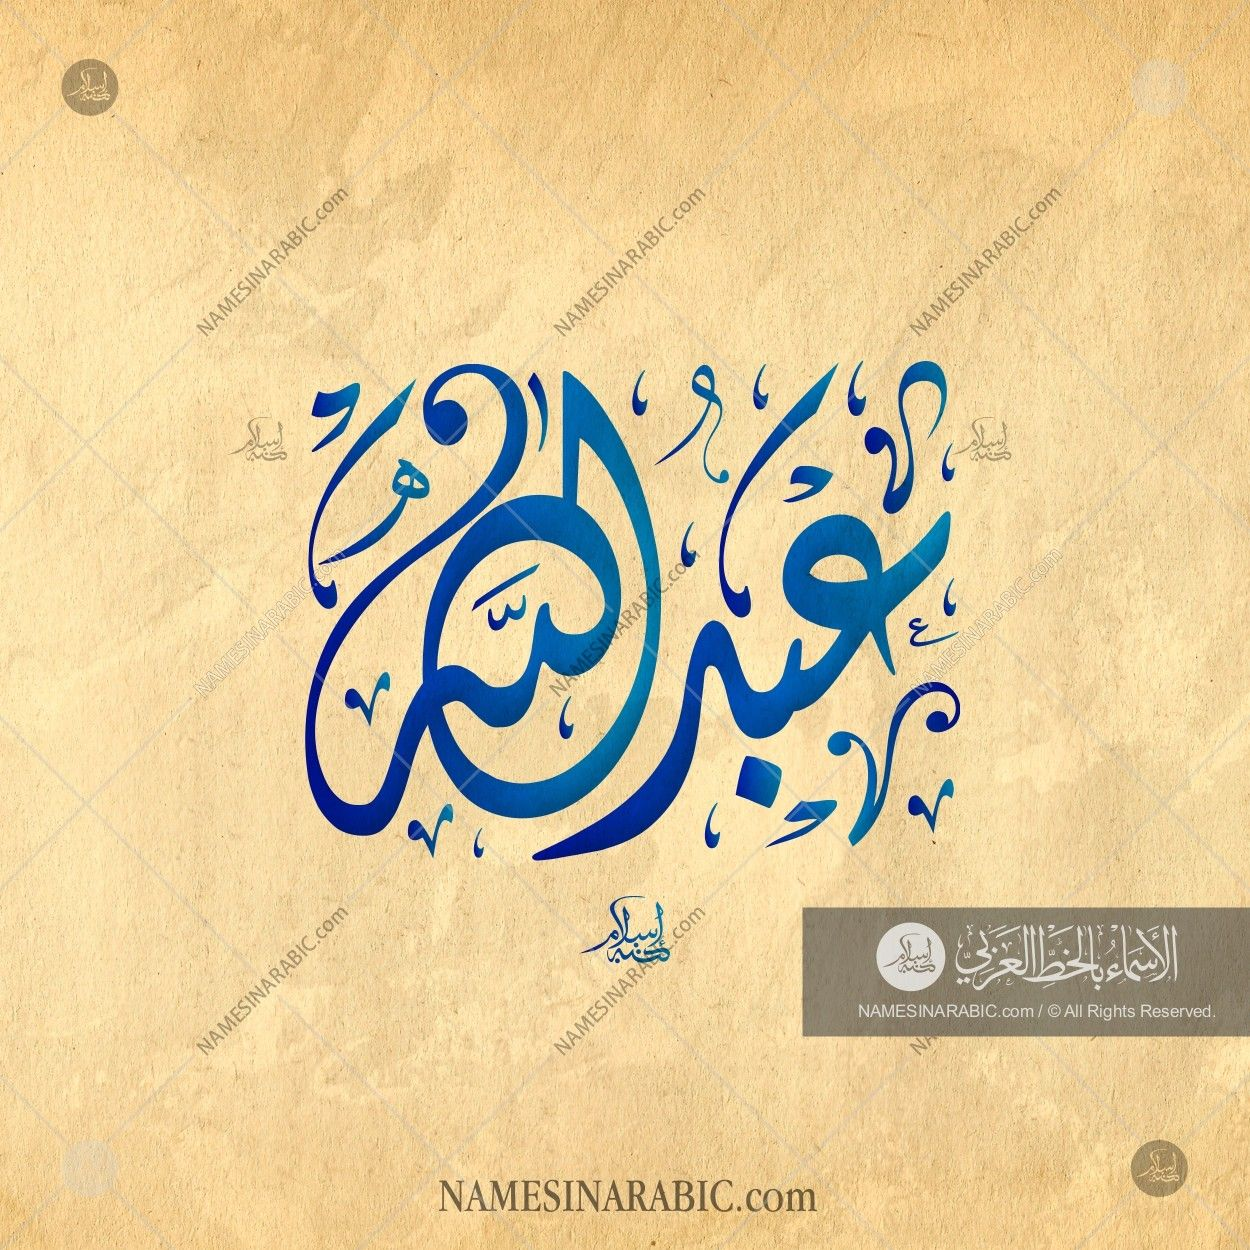 Abdullah عبد الله Names In Arabic Calligraphy Name 6851 Calligraphy Name Islamic Art Calligraphy Islamic Caligraphy Art